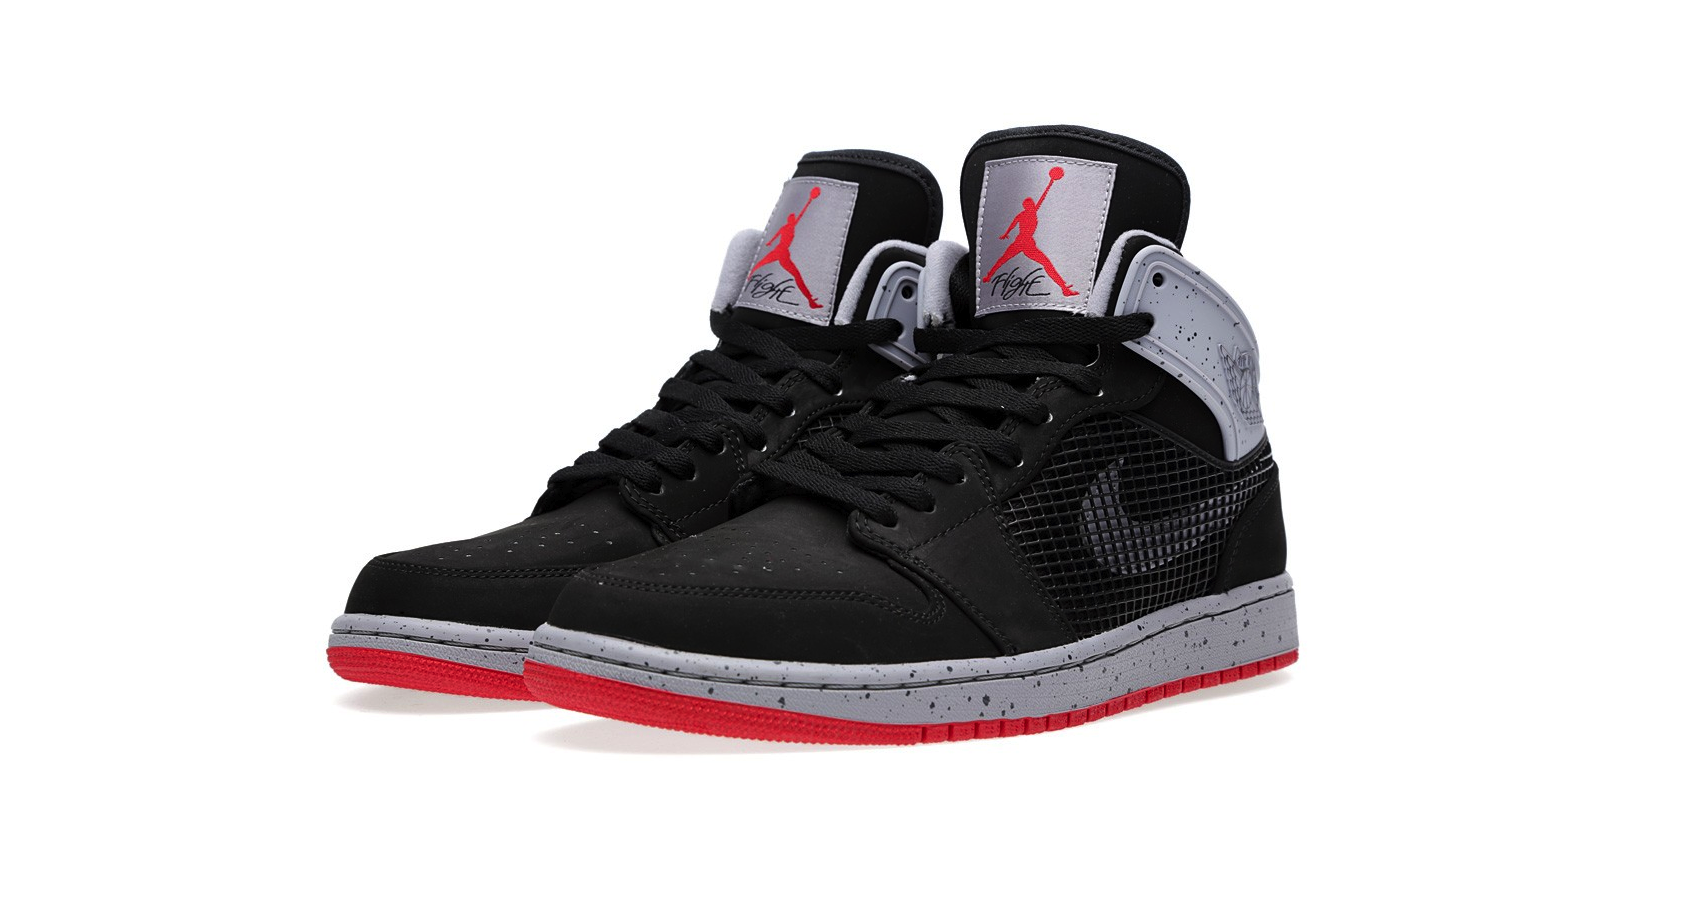 Nike Air Jordan 1 Retro 89 Black, Fire Red and Cement Grey